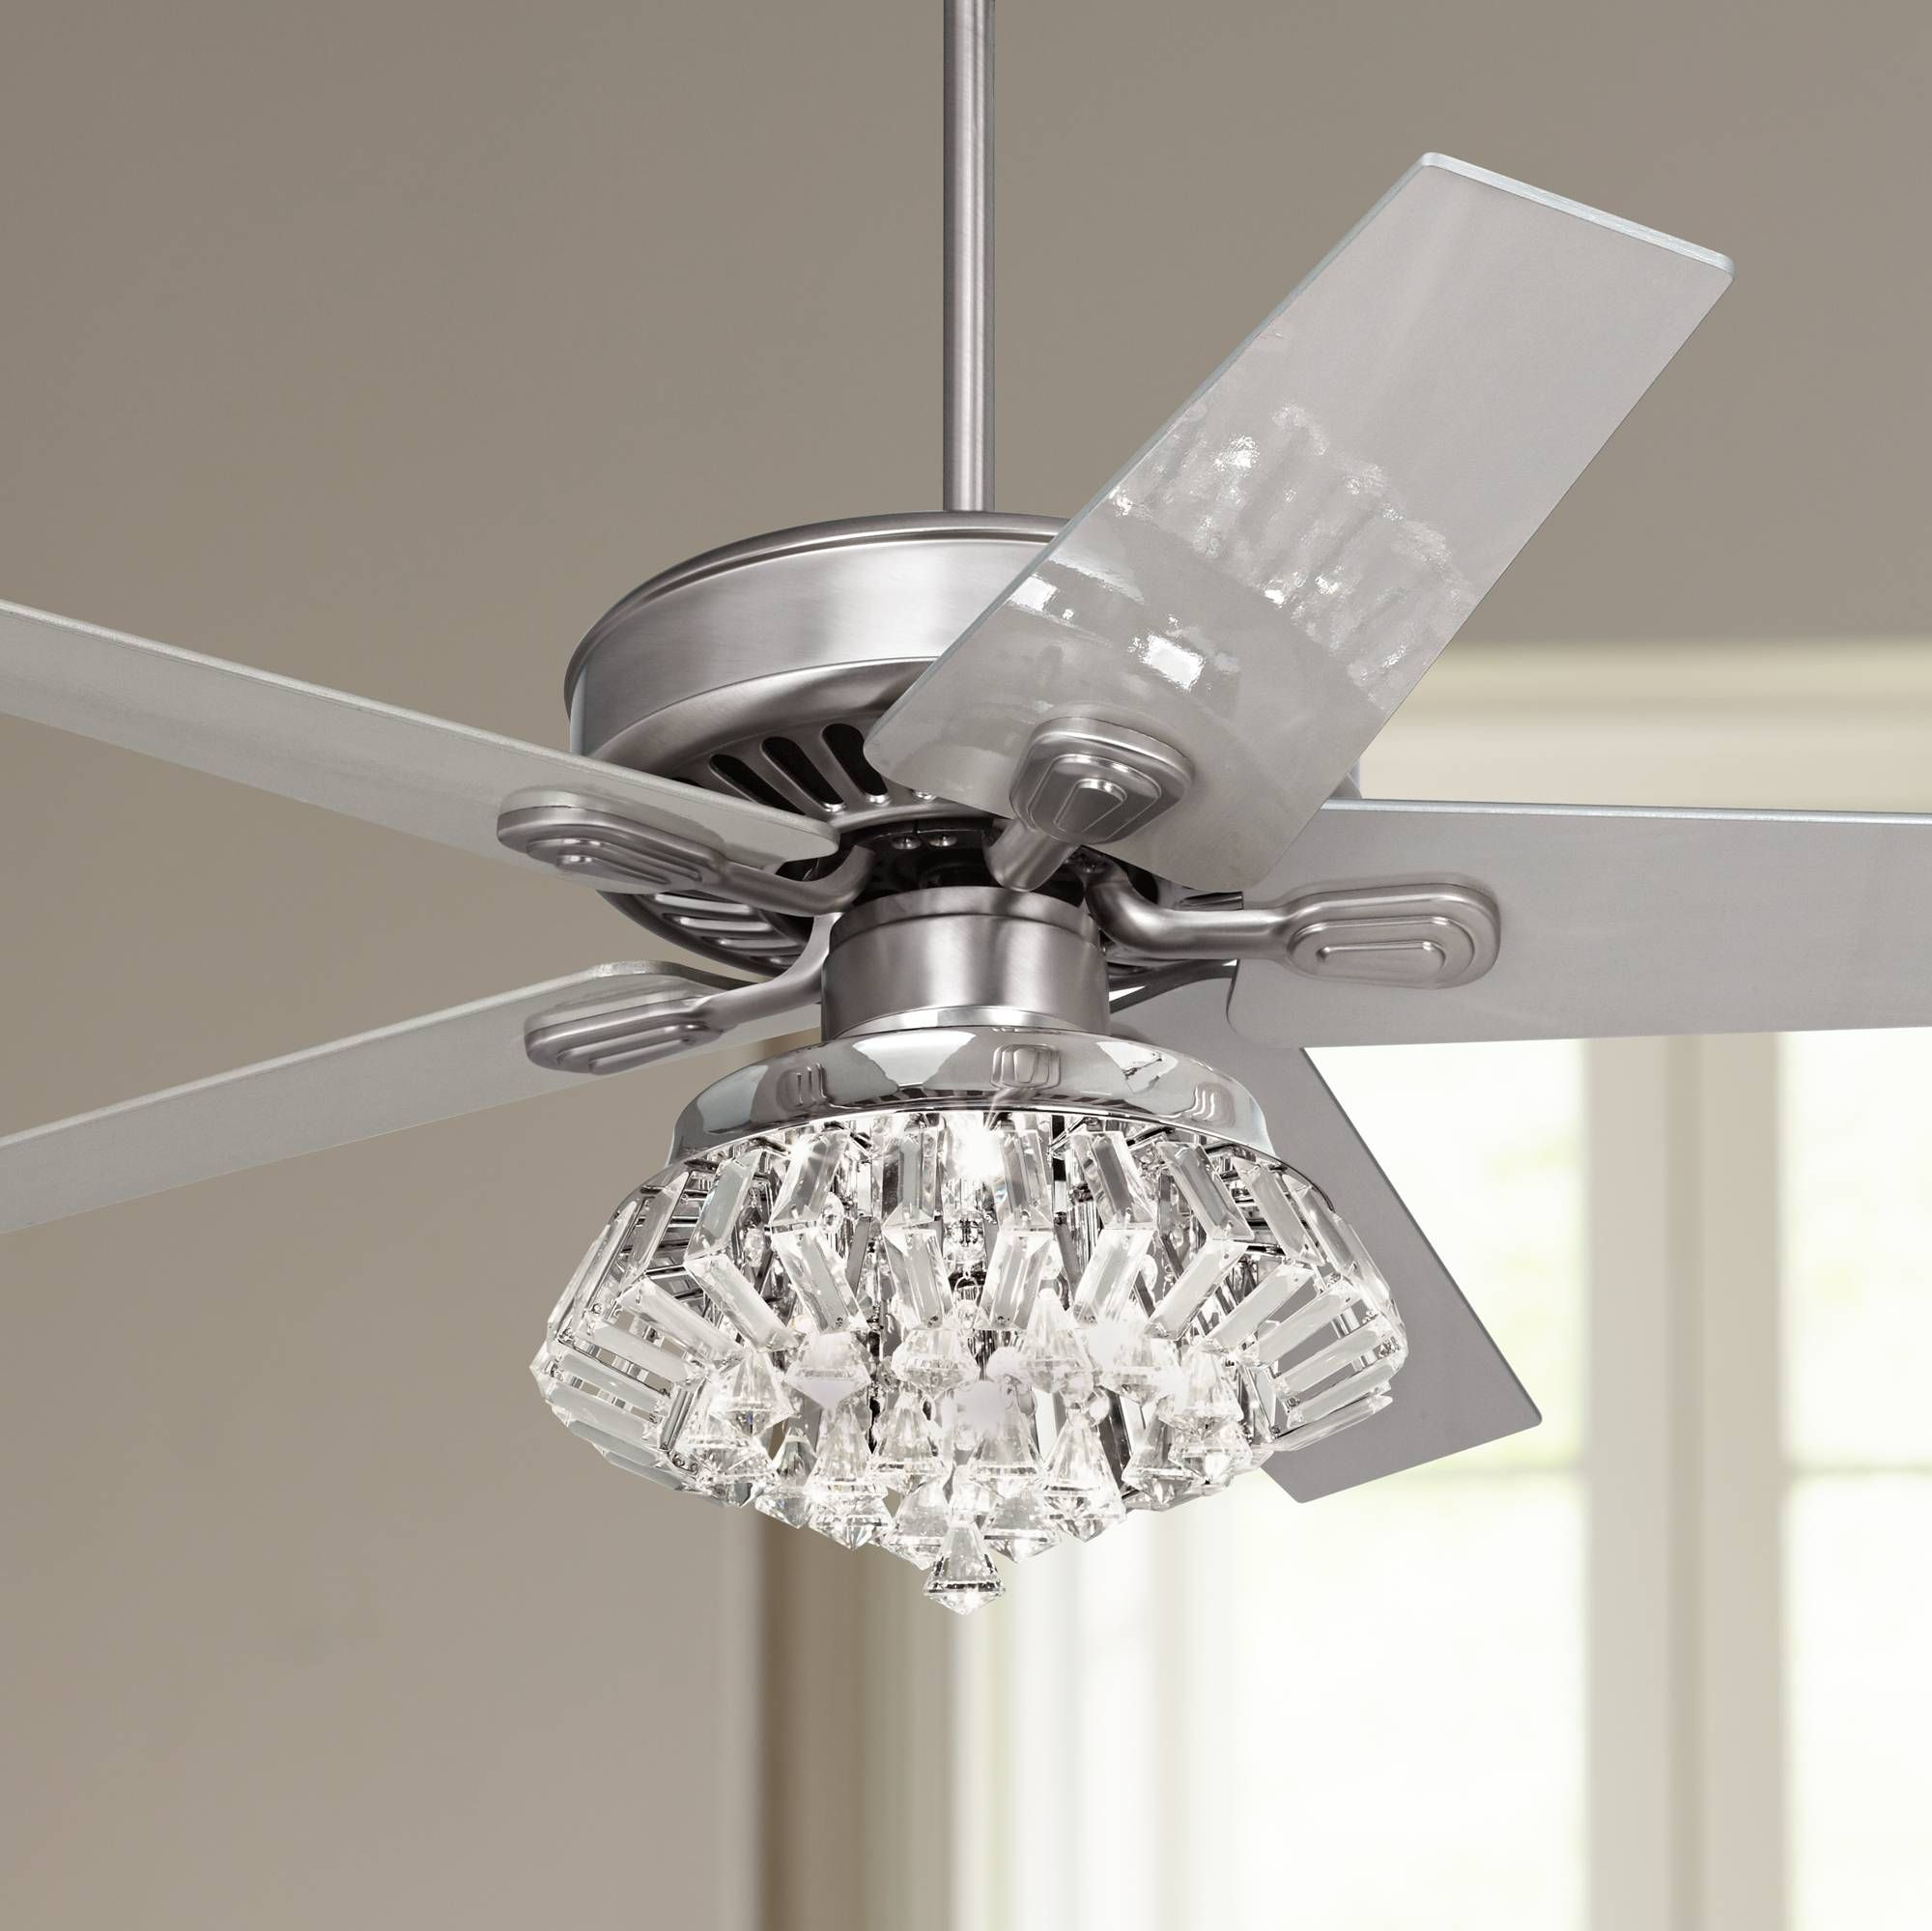 Unique Crystal Ceiling Fans with Lights